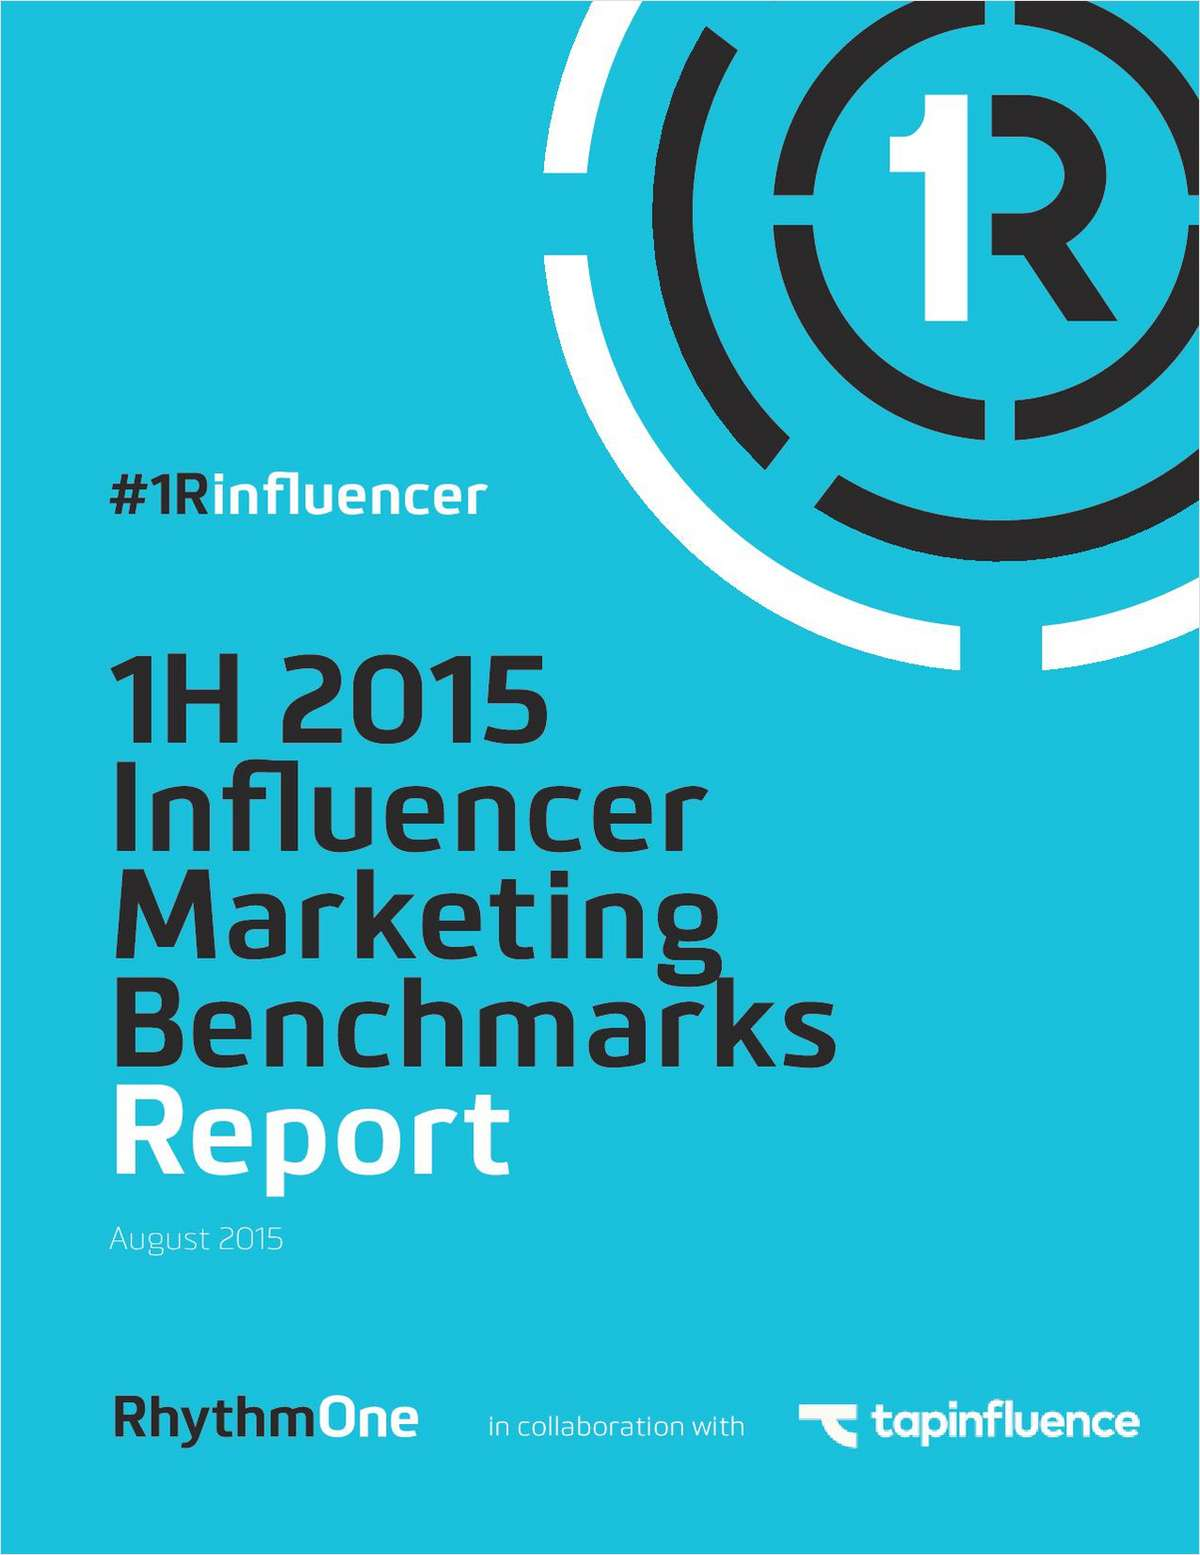 Influencer Marketing Benchmarks Reports of 2015